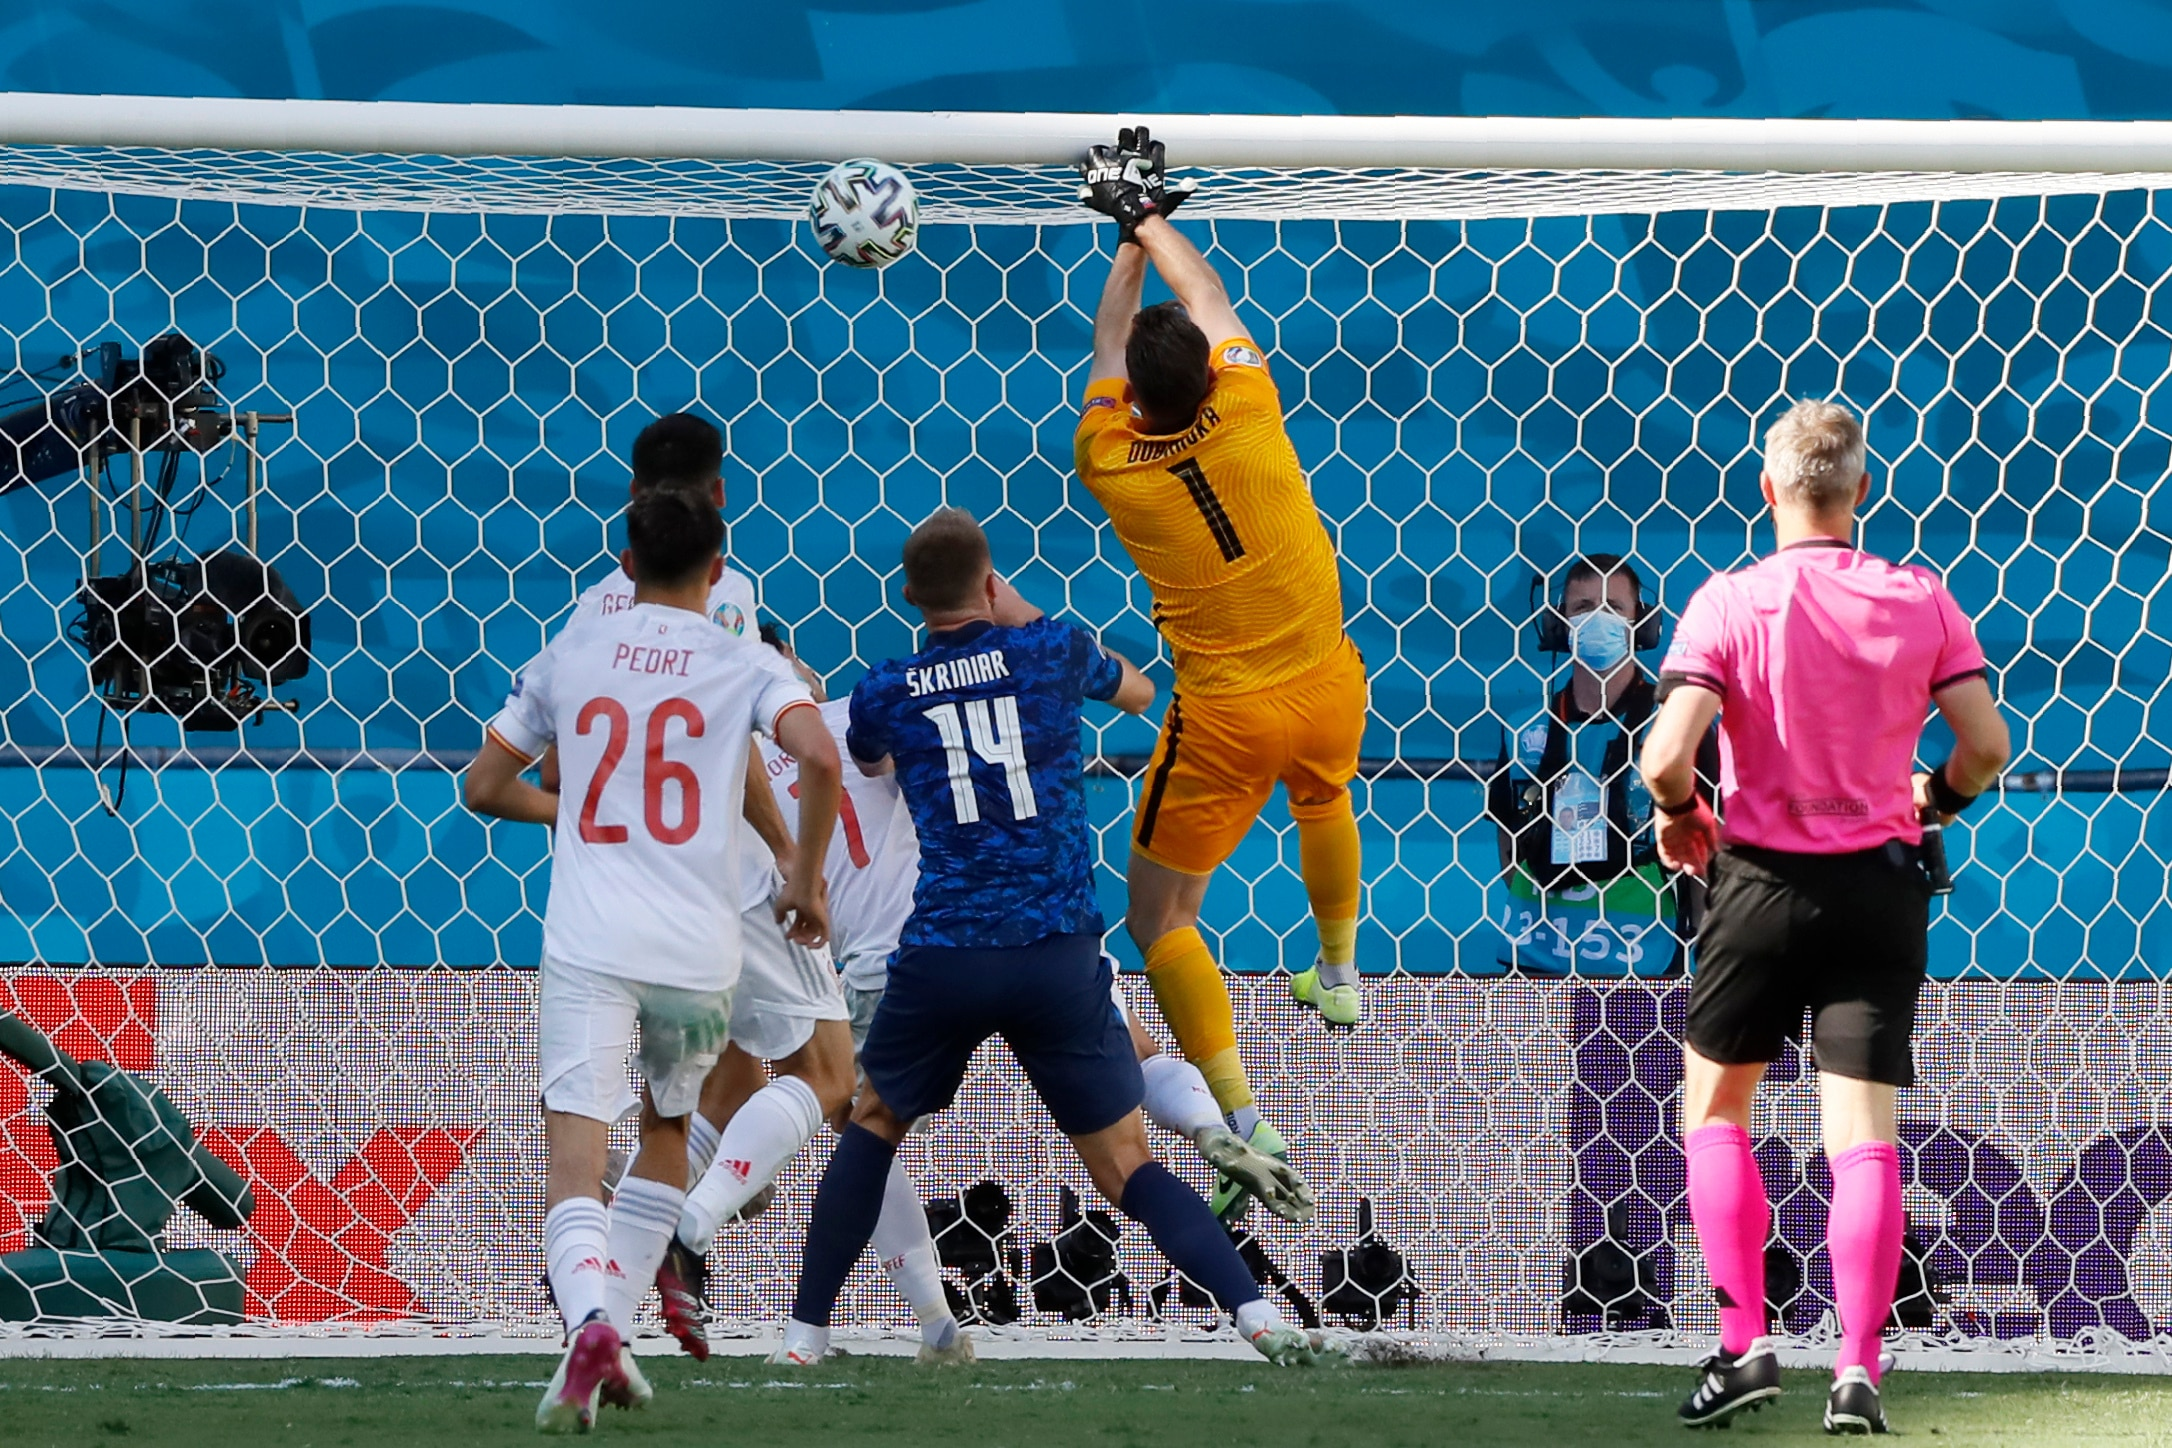 Martin Dubravka's own goal to give Spain a helping hand (Source: GM Newsshub)